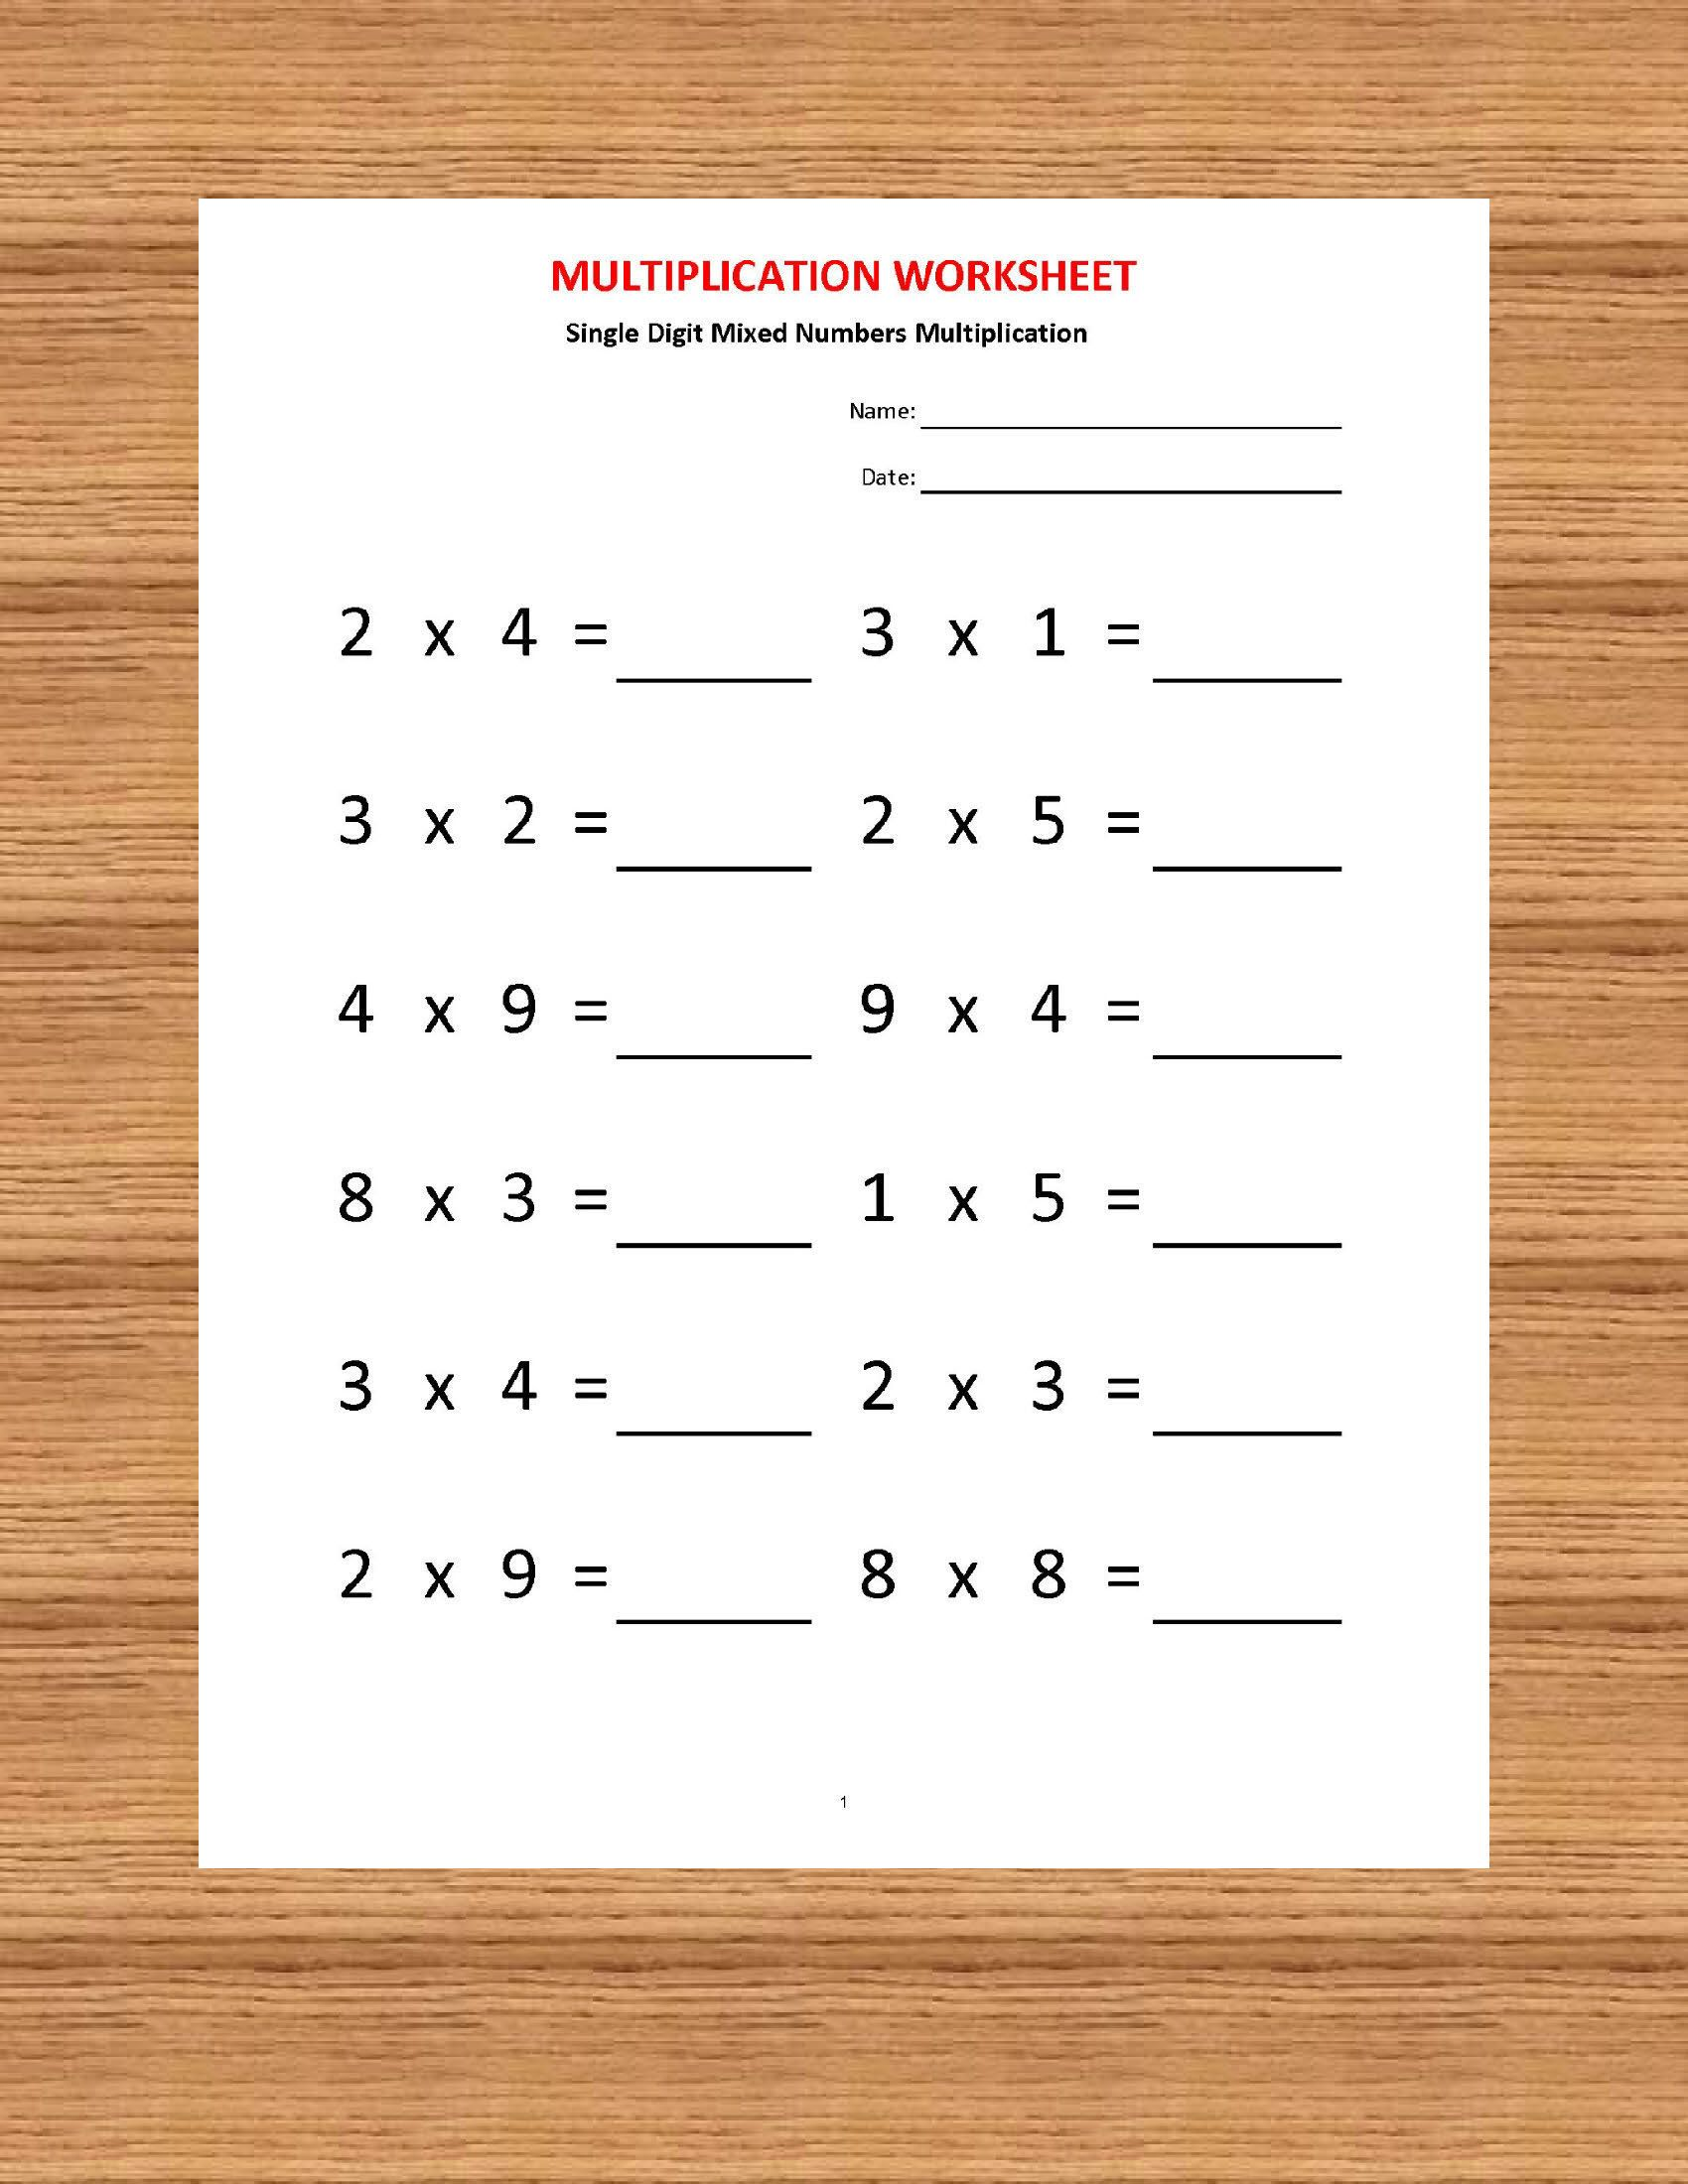 Multiplication Worksheets Printable Worksheets Multiplication